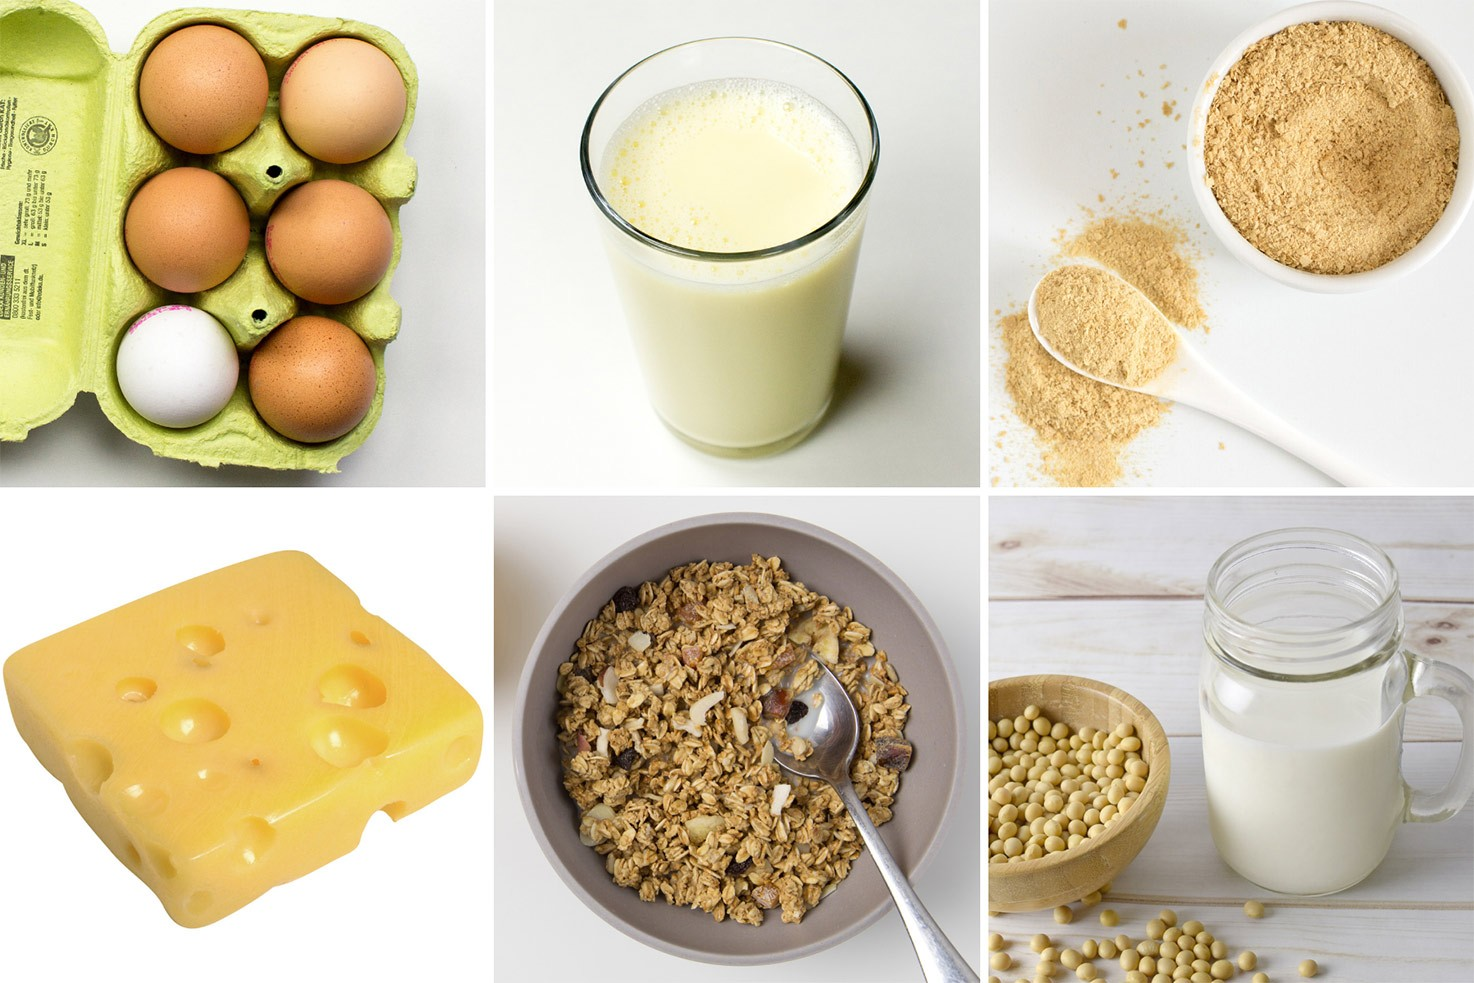 Vegetarian sources of B12: egges, soy milk, cheese, fortified cereals, milk| hurrythefoodup.com